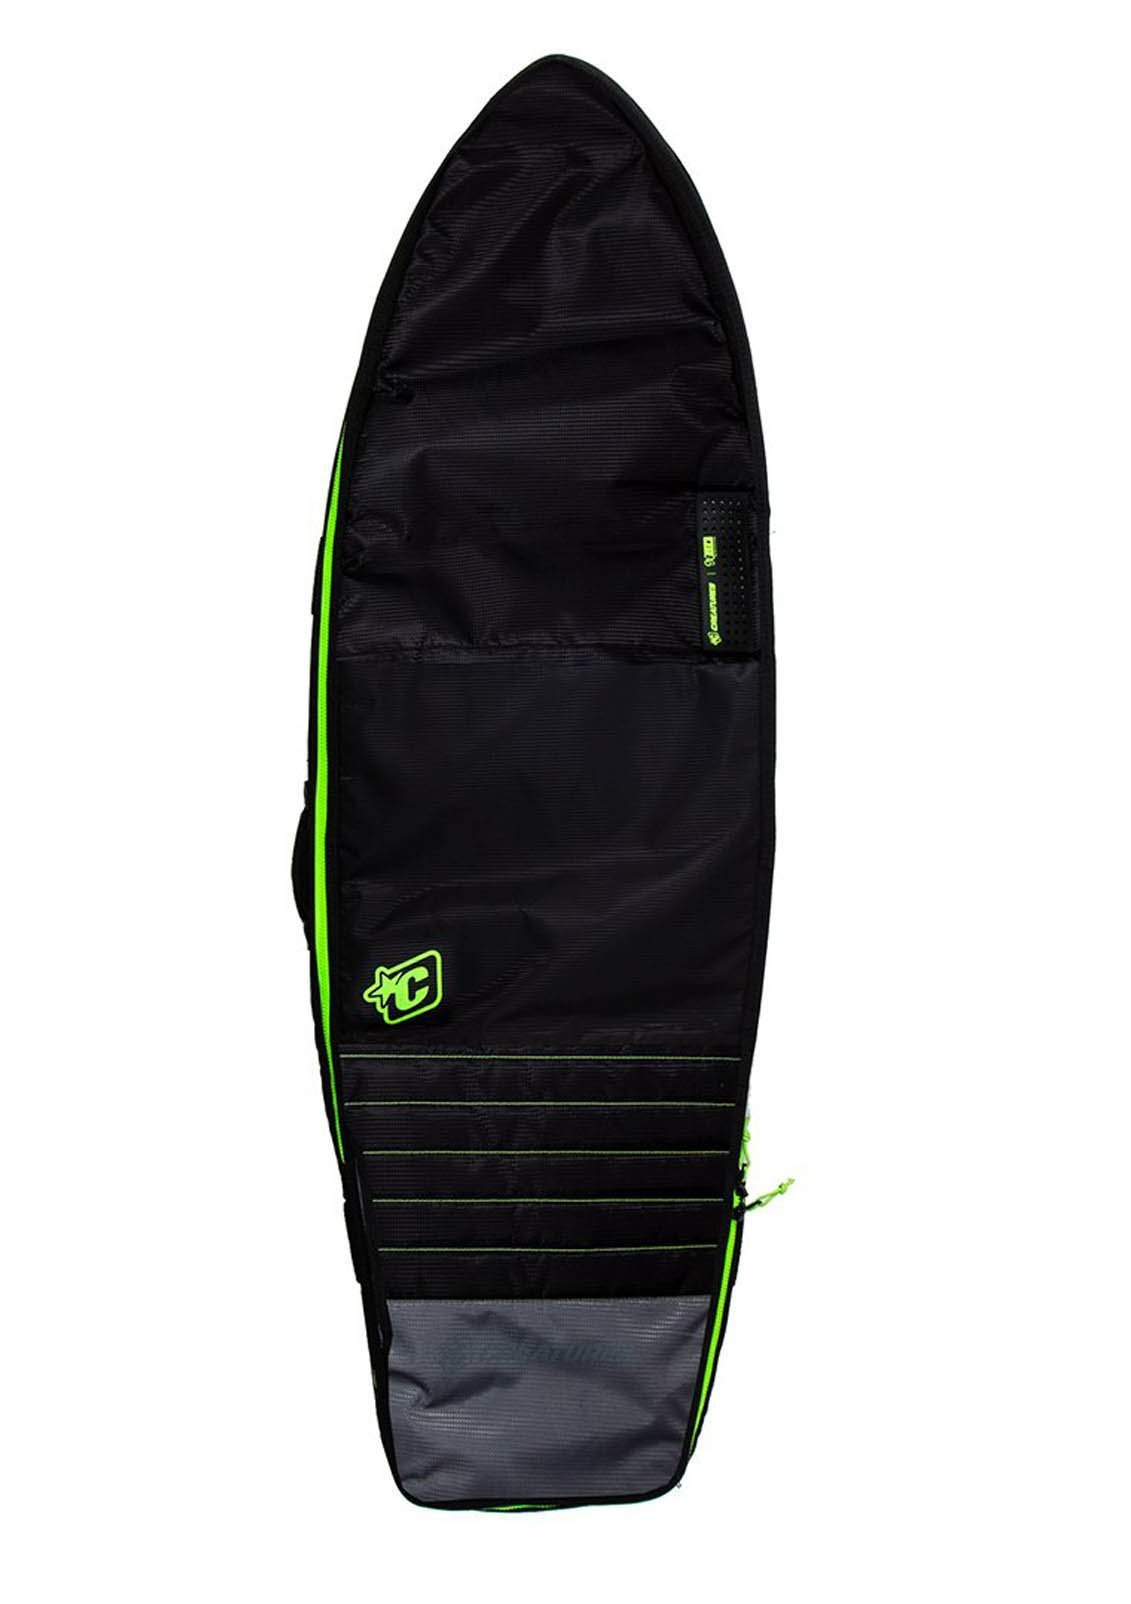 Creatures Of Leisure Fish Double Surfboard Bag